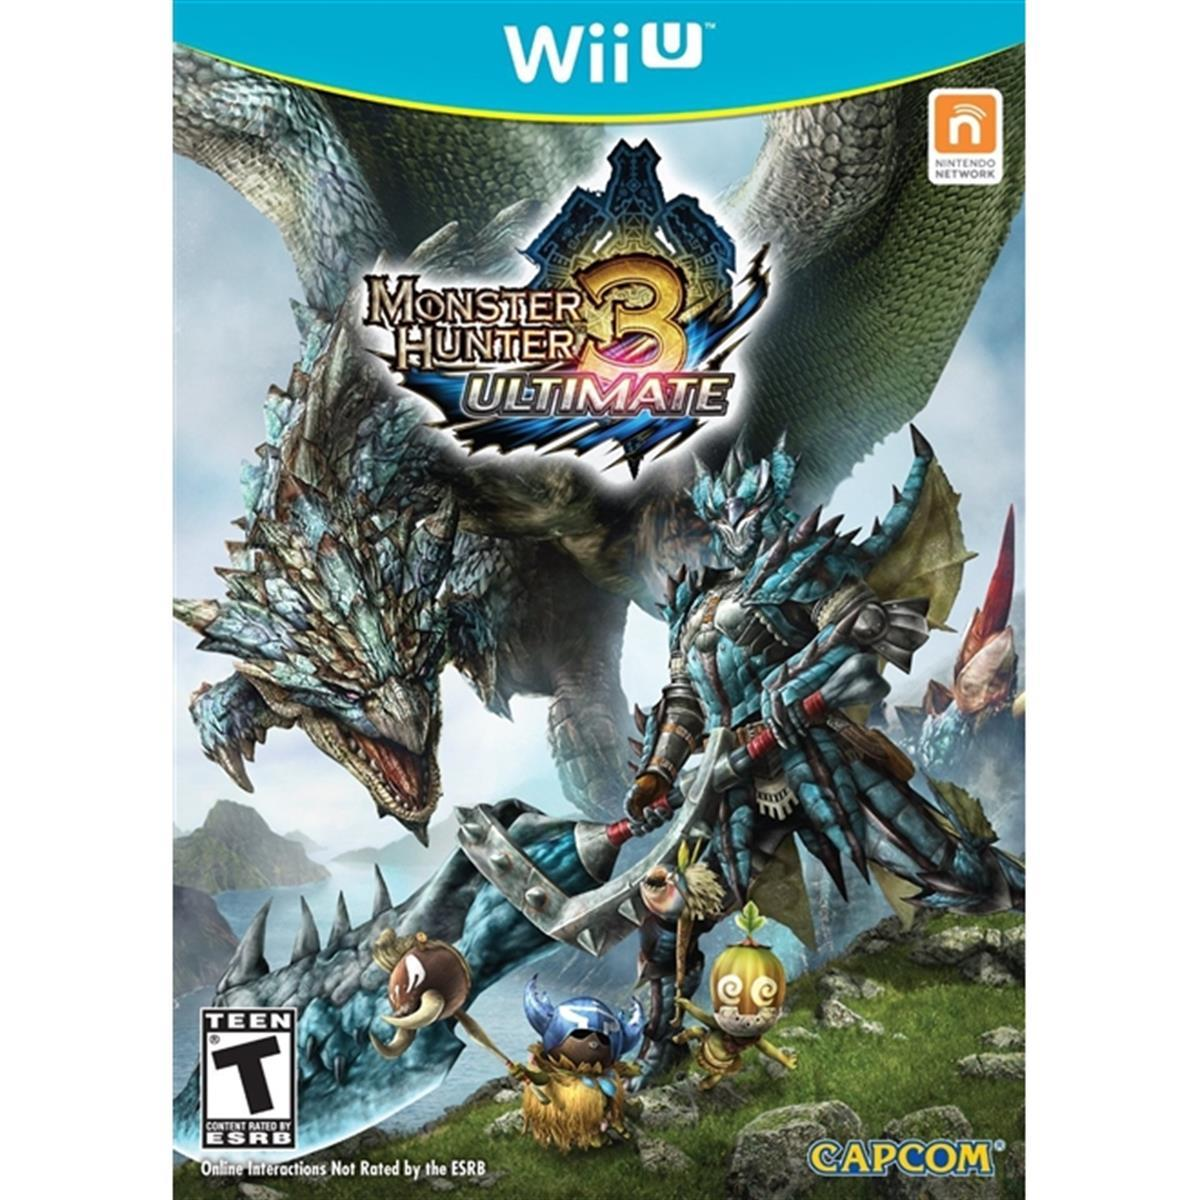 Monster Hunter 3 Ultimate USADO - Wii U